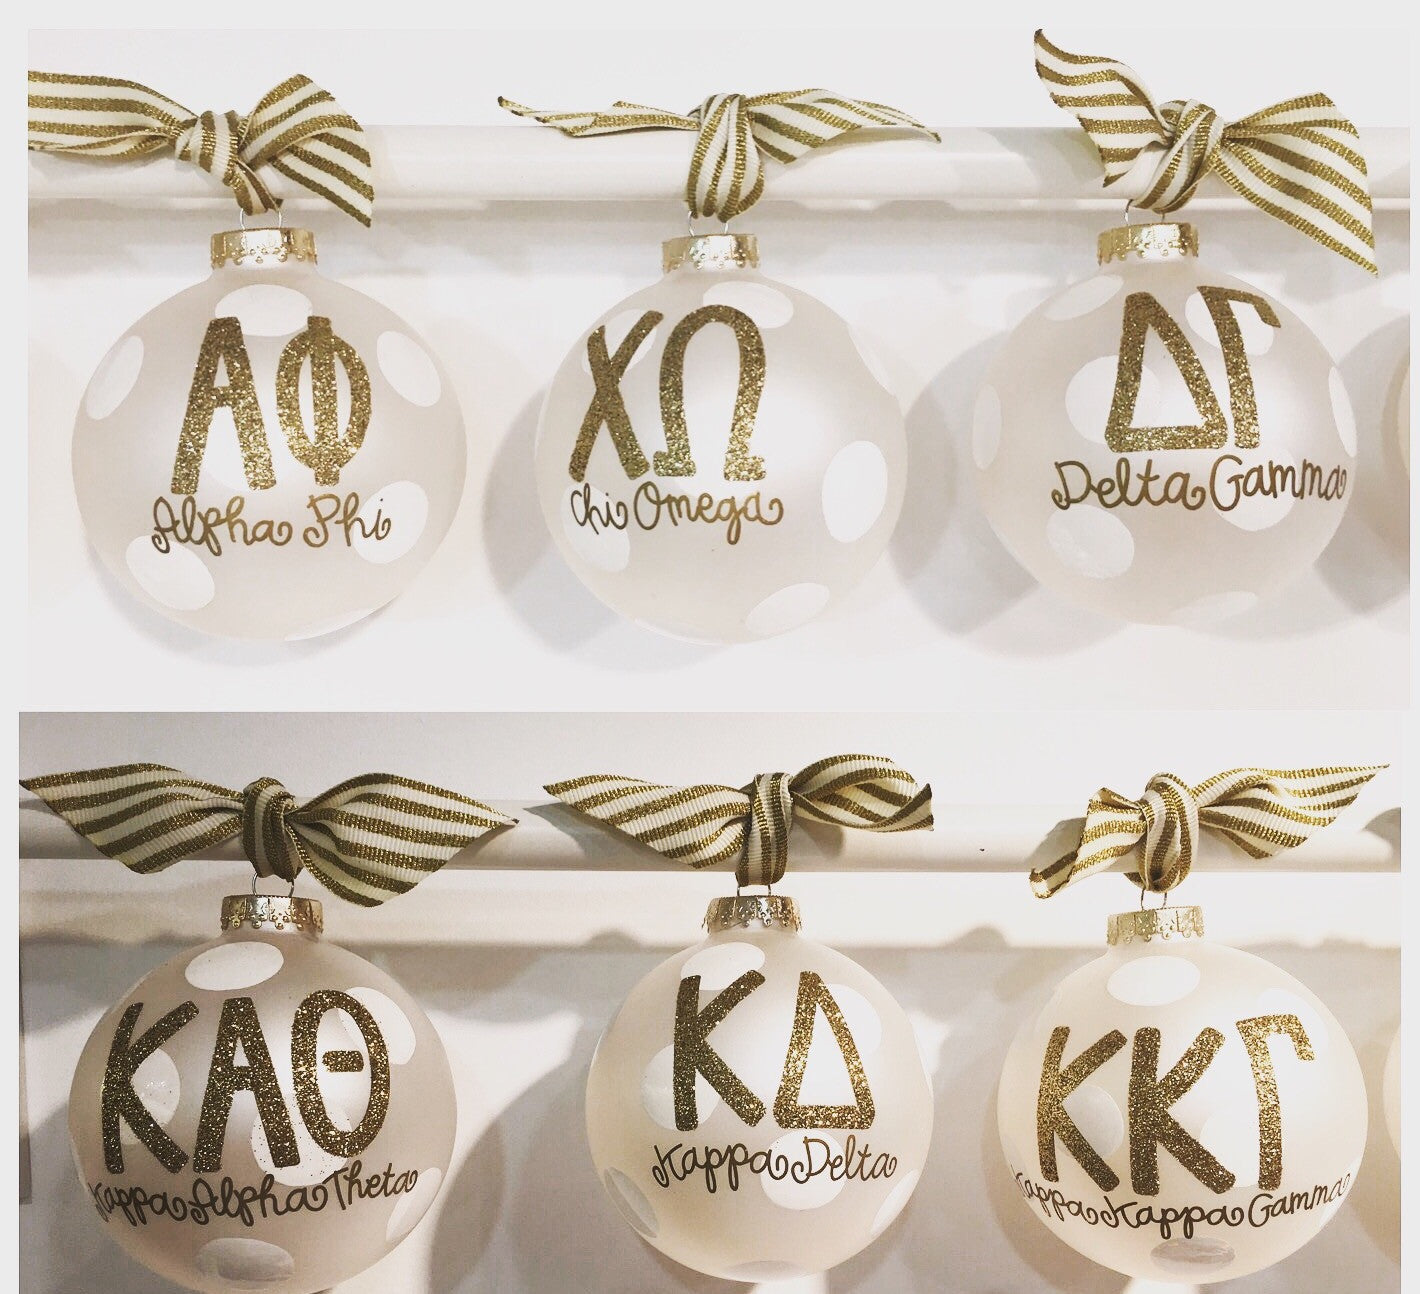 White and Gold Sorority Ornament – Paddle Tramps